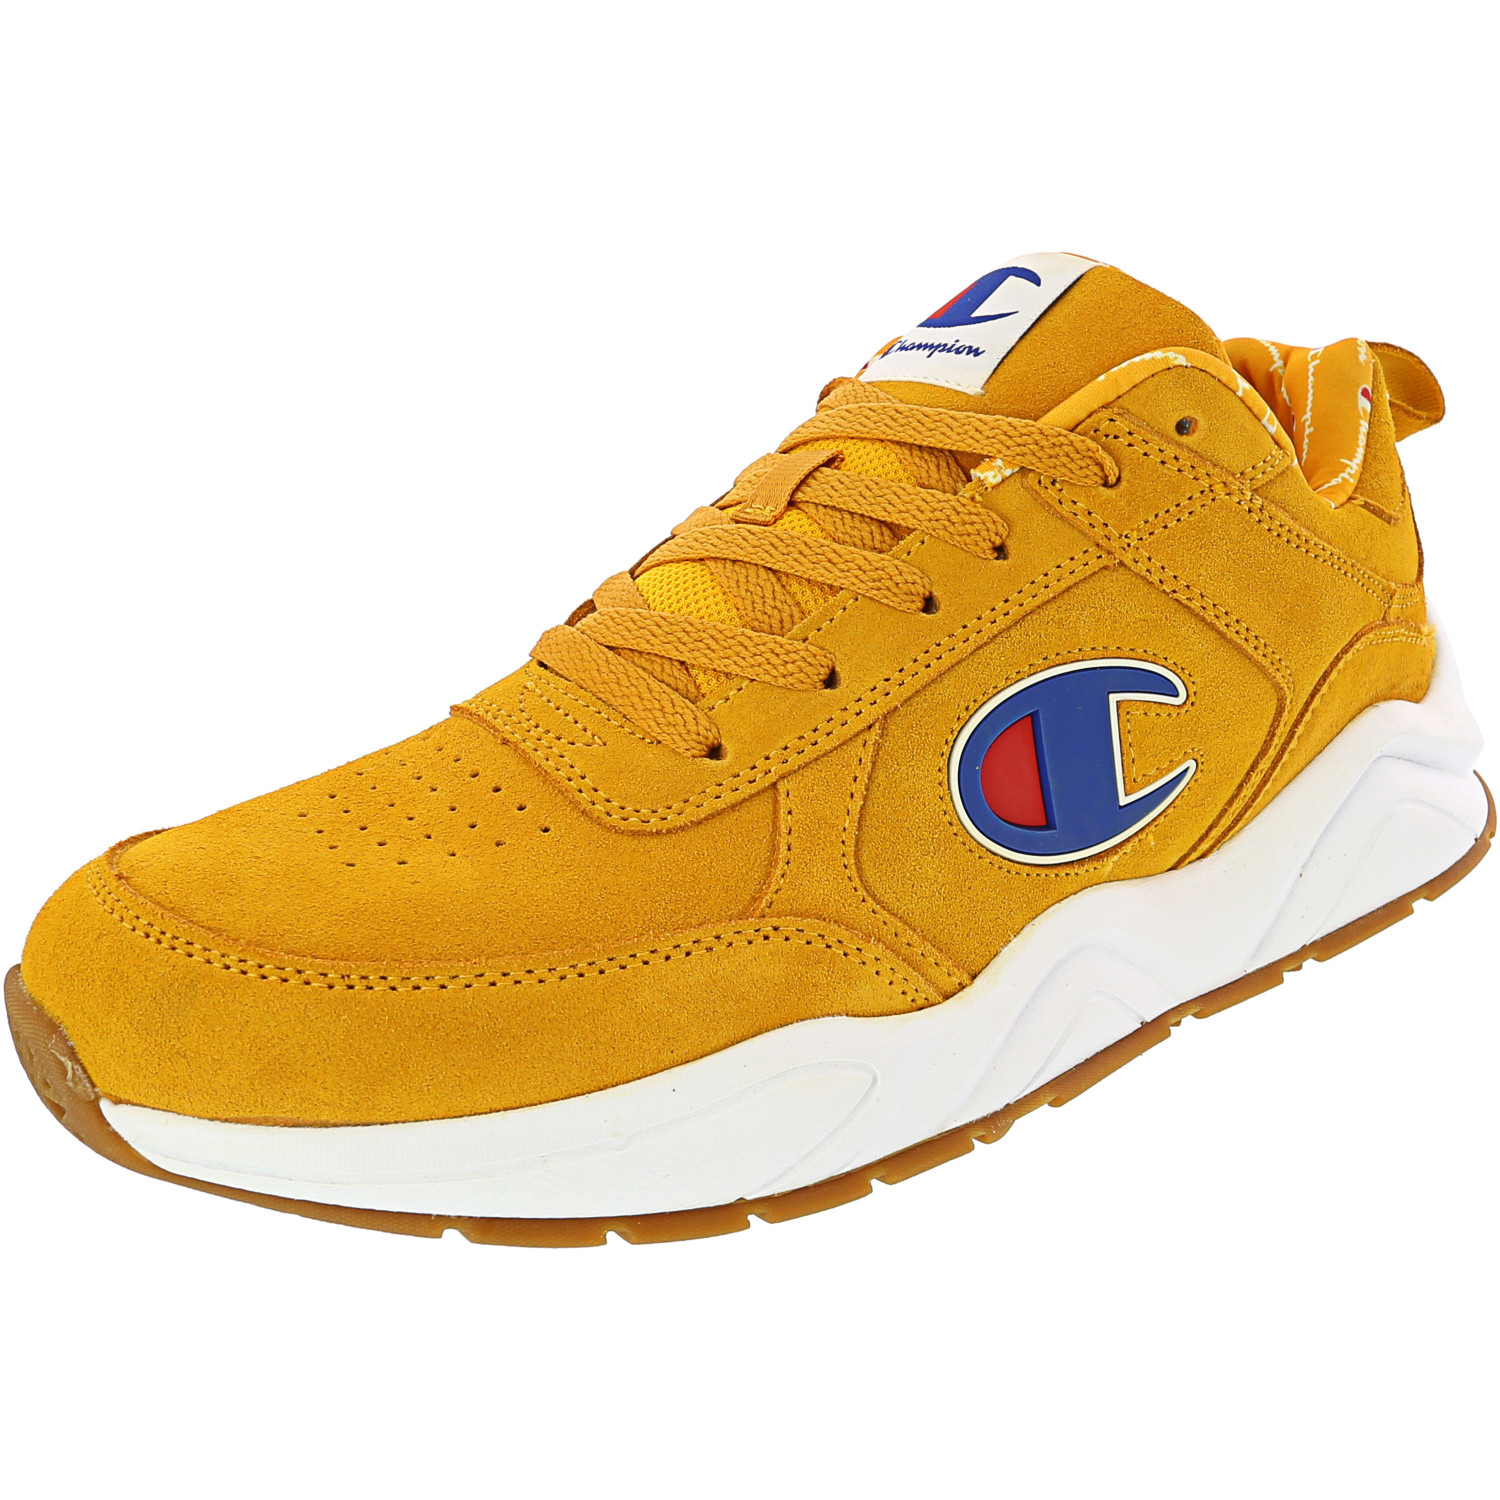 Gold Ankle-High Suede Sneaker - 10.5